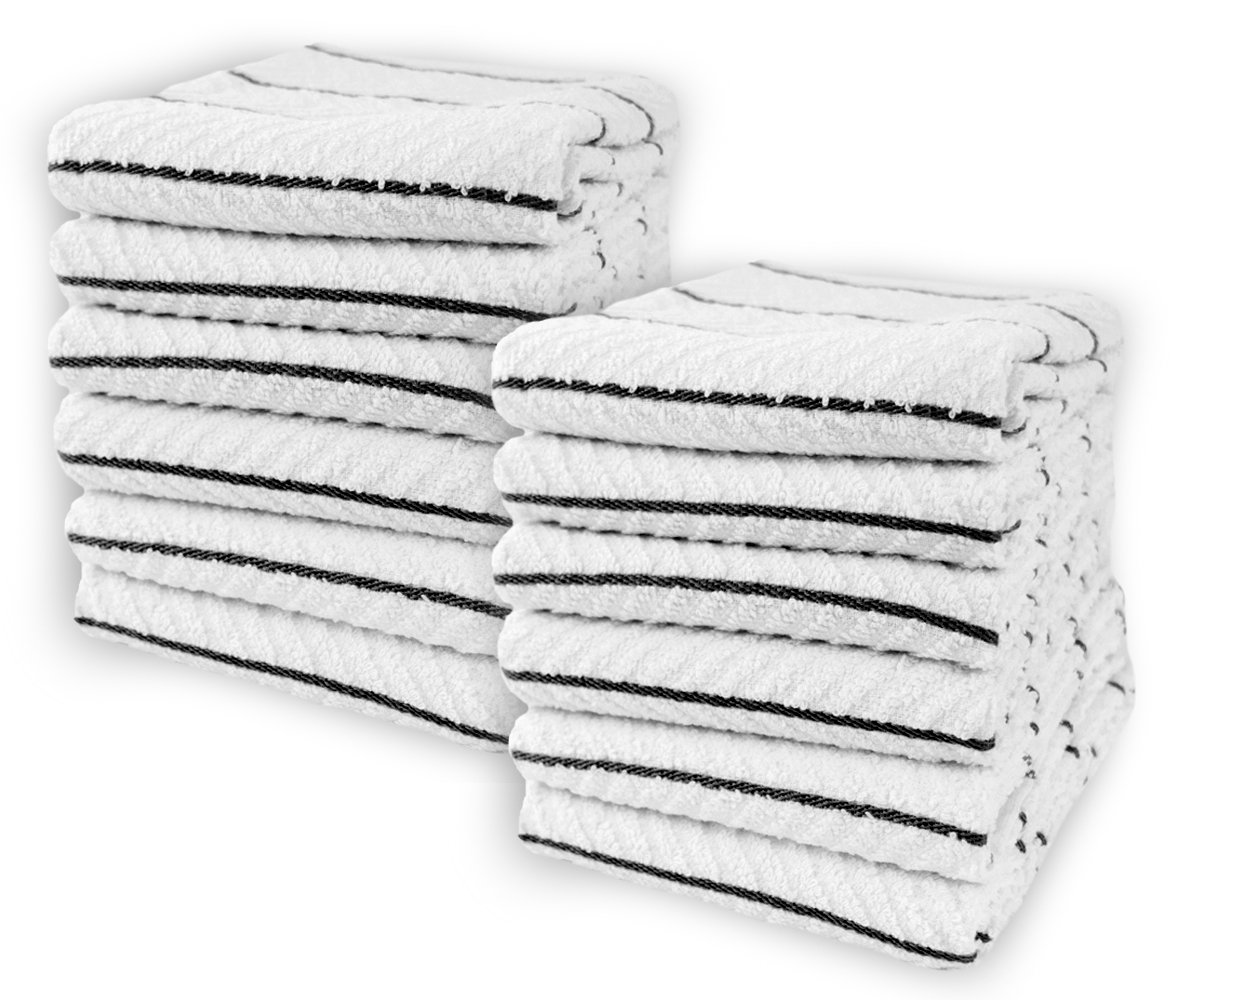 Cotton & Calm Exquisitely Absorbent Kitchen Towels Dish Cloths (12 Pack, 16'' x 26''), White with Black Stripes 100% Cotton Dish Towels, Bar Towels- Crafted for Home, Restaurant, Bar Use